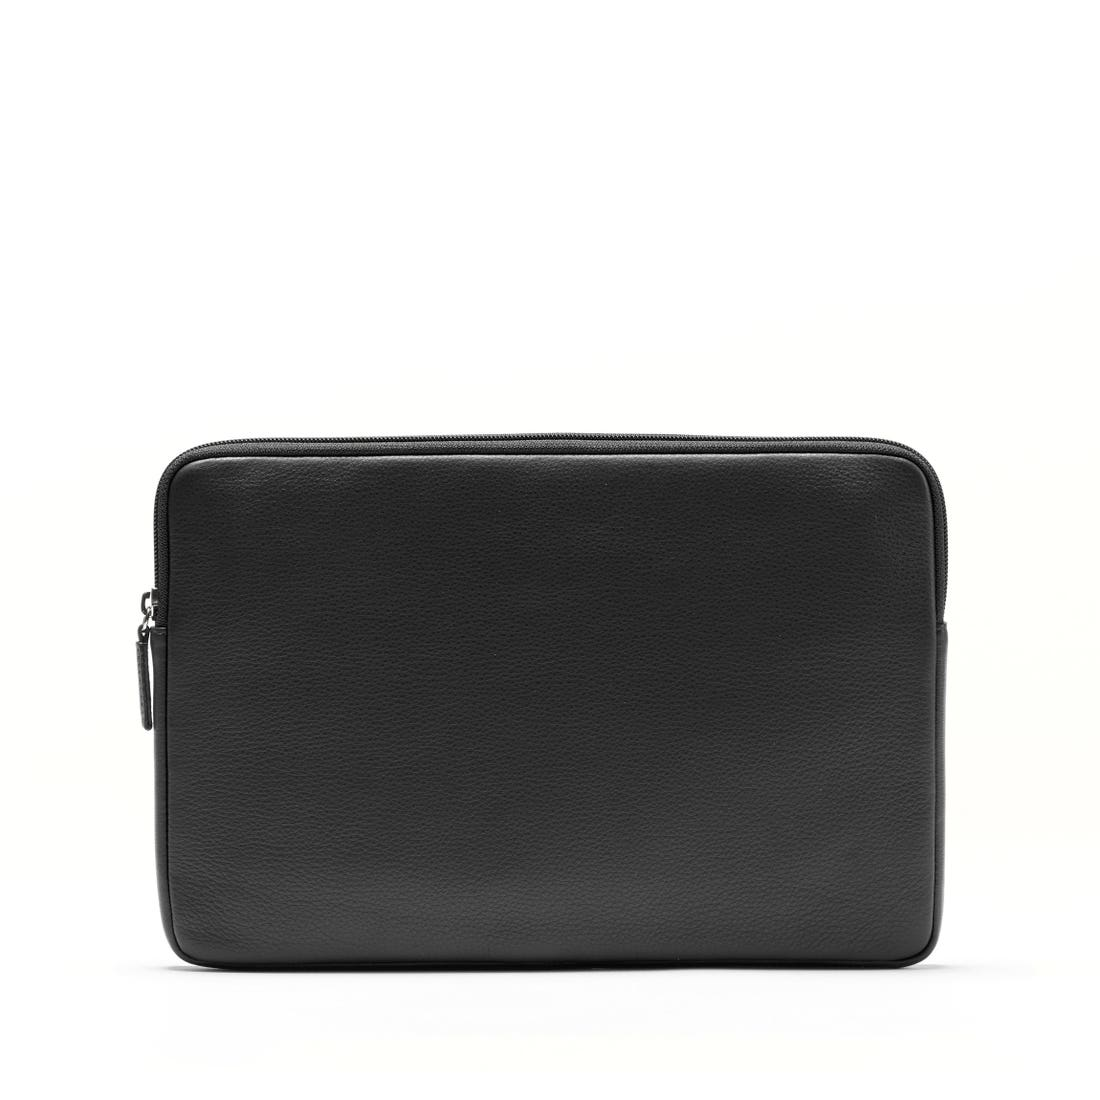 11 Inch MacBook Air Sleeve